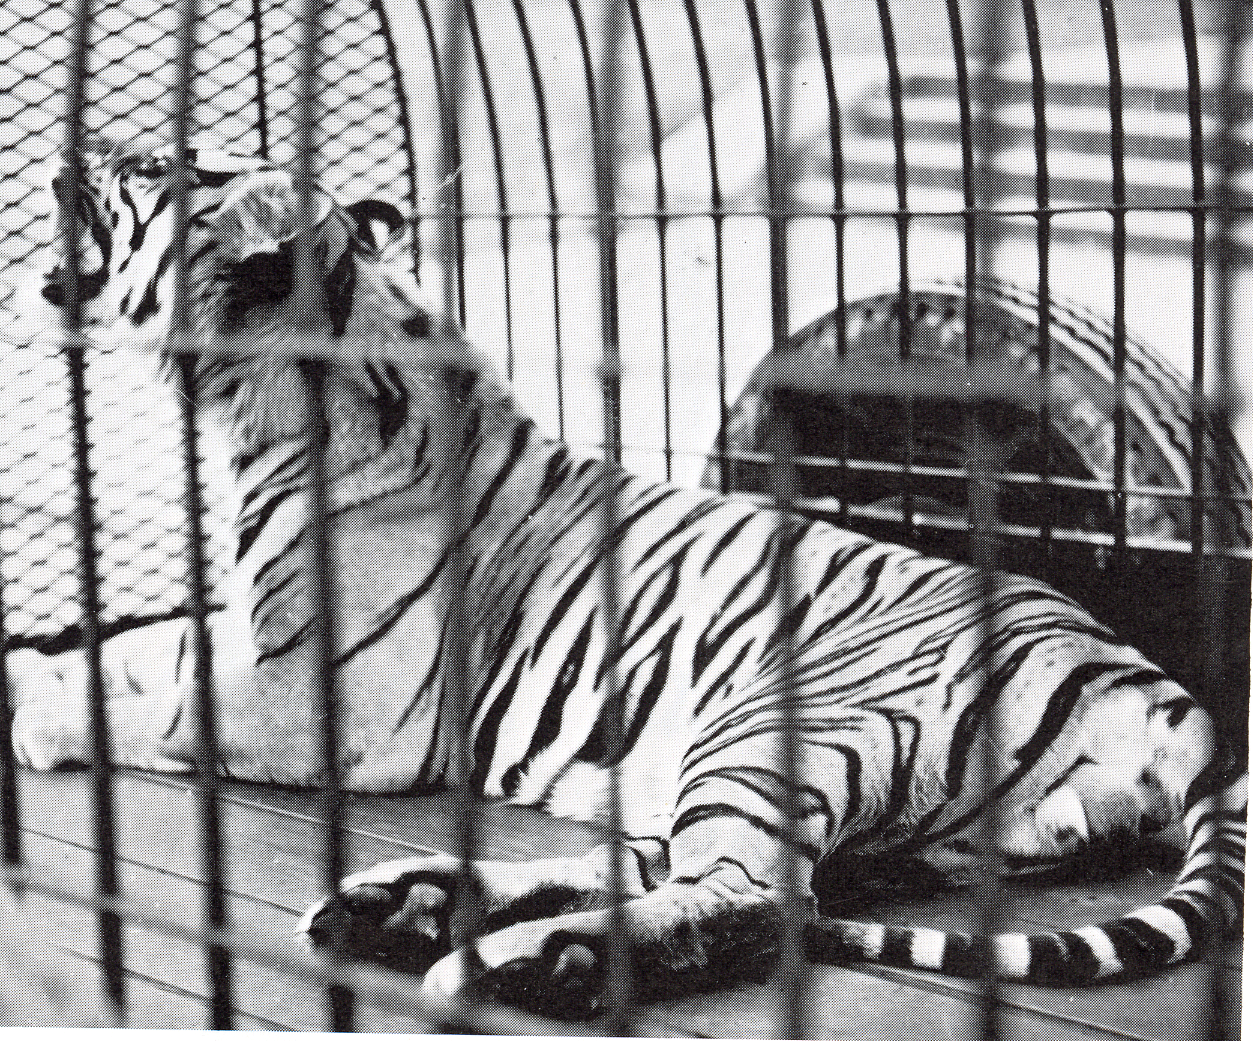 A scan of the 1969 Monroyan yearbook. Shasta the tiger lays in a trailer.